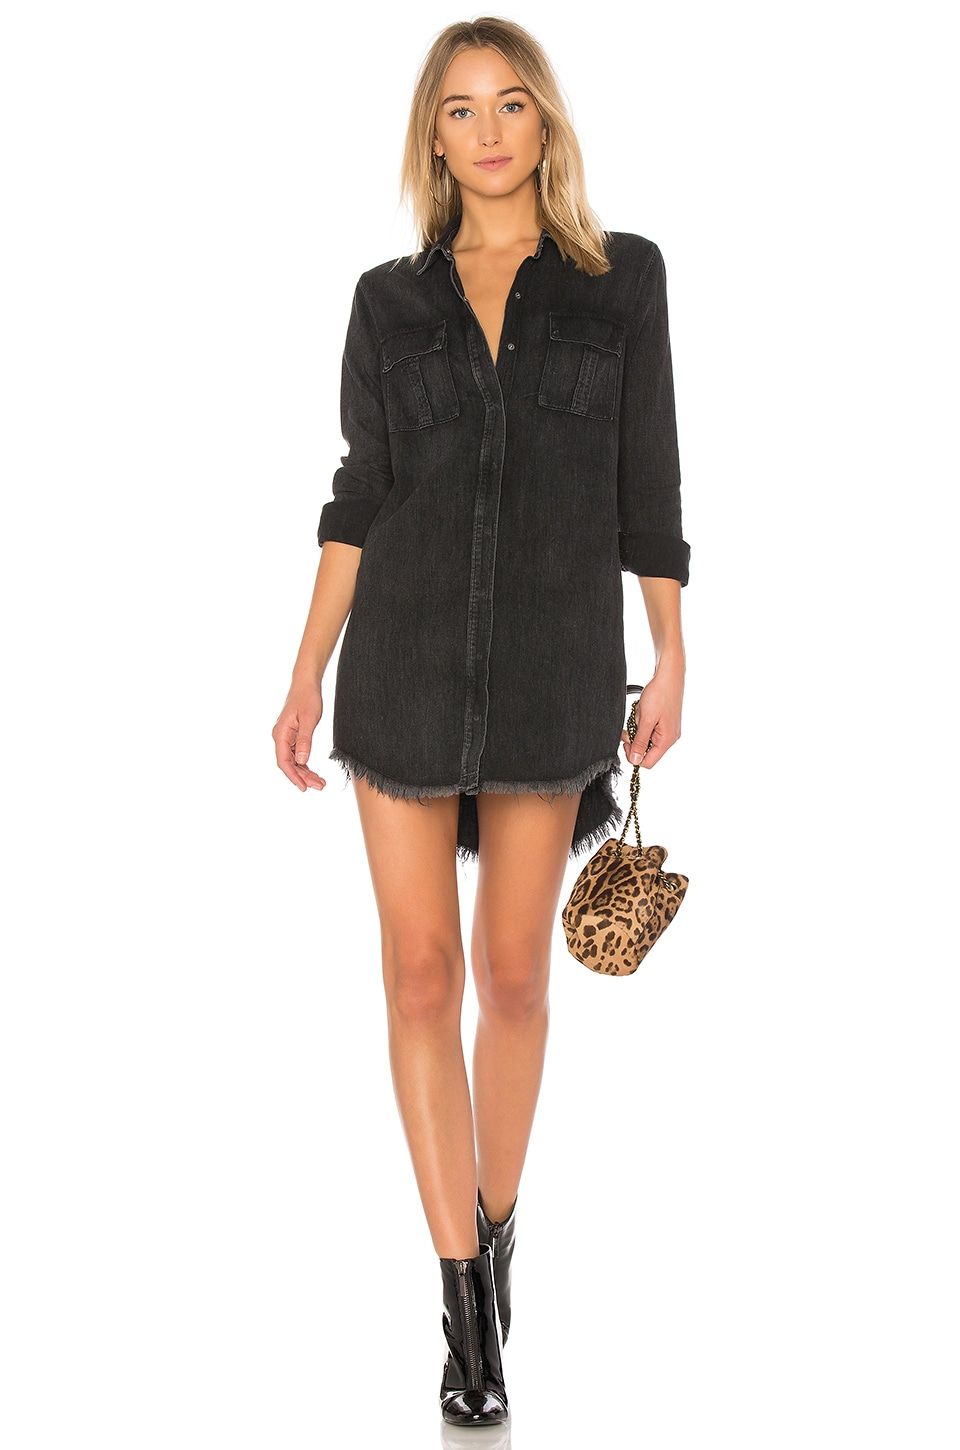 Bijou Shirt Dress